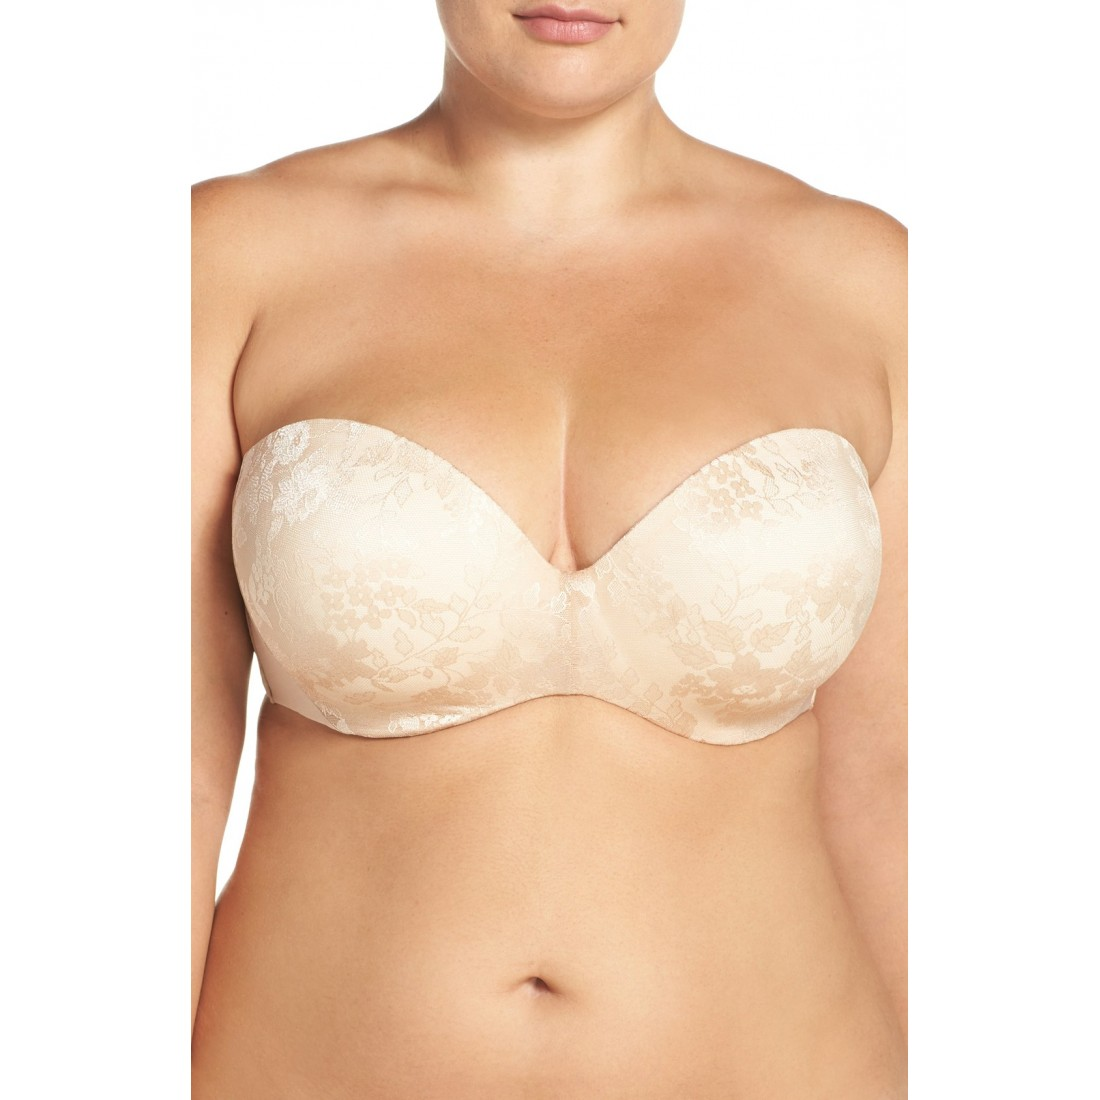 14b0caa6b7eb1 Curvy Couture Strapless Underwire Push-Up Bra (Plus Size) NS5257490